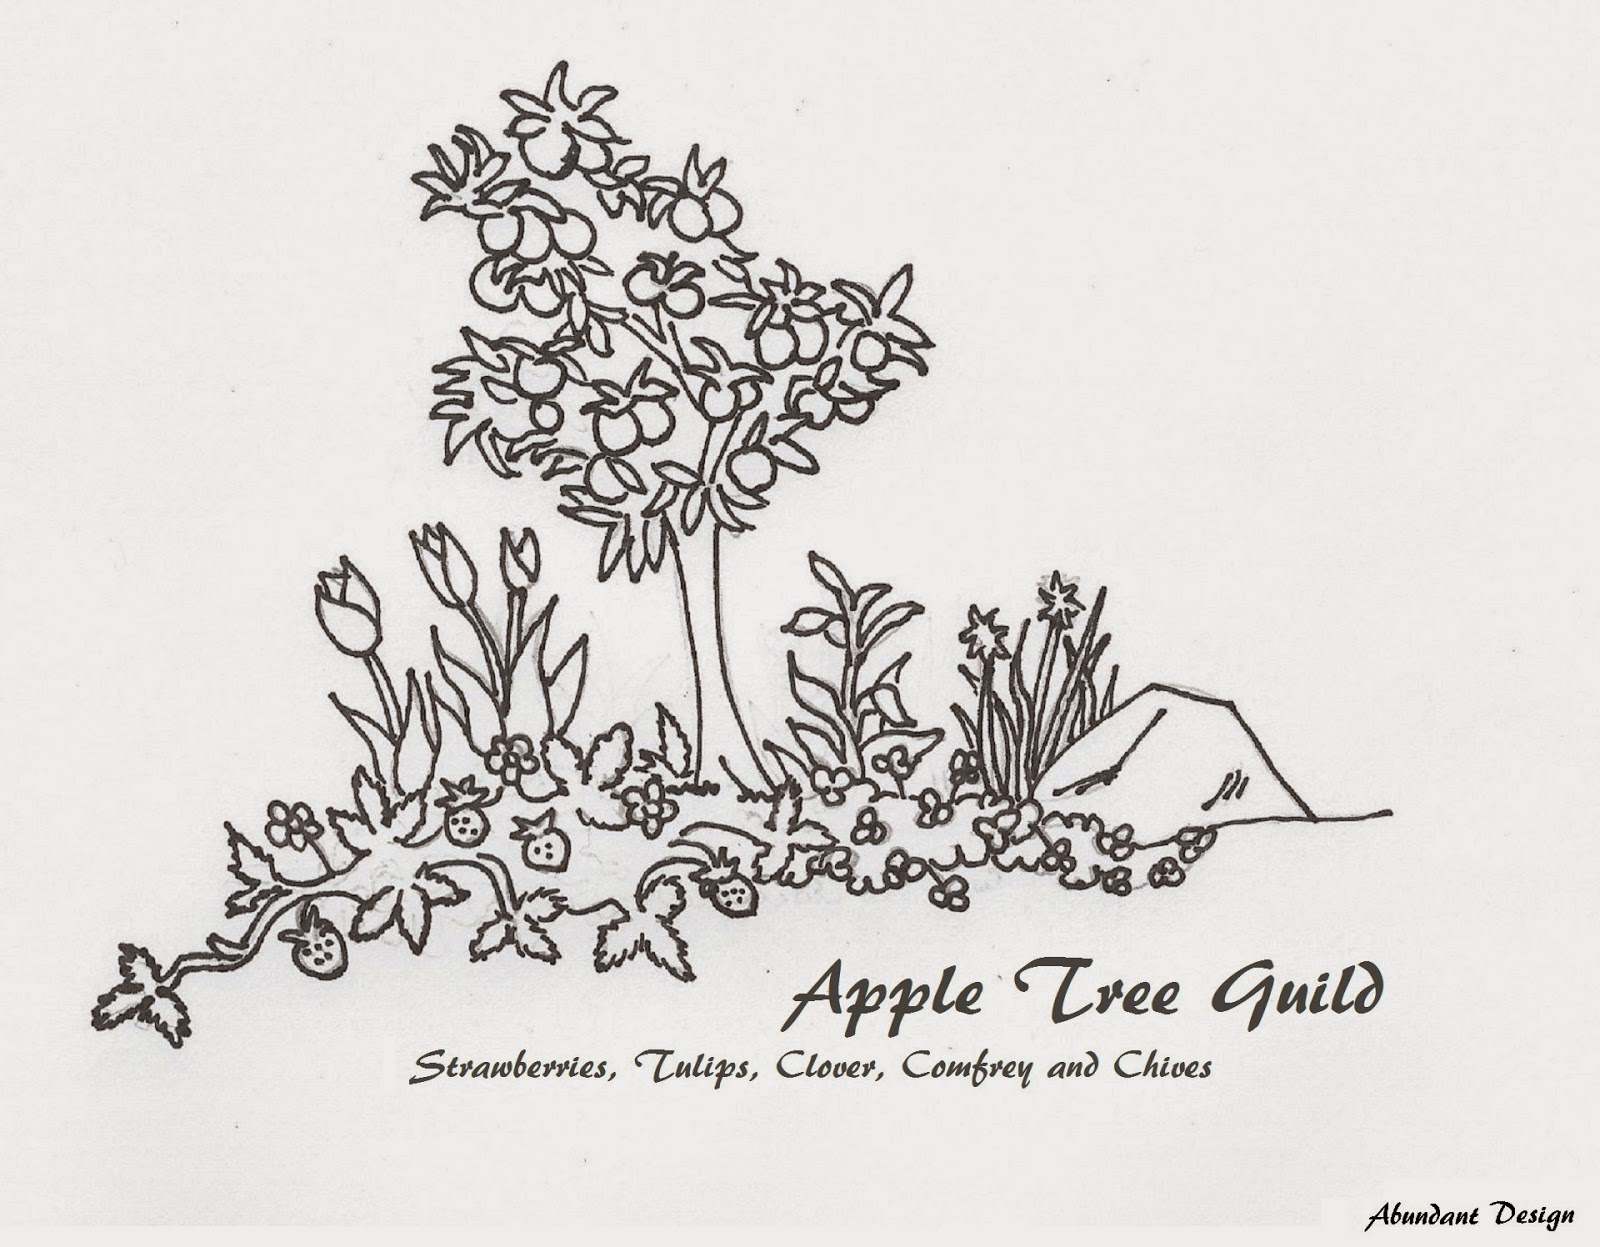 coloring page for kids apple tree guild education forum at permies